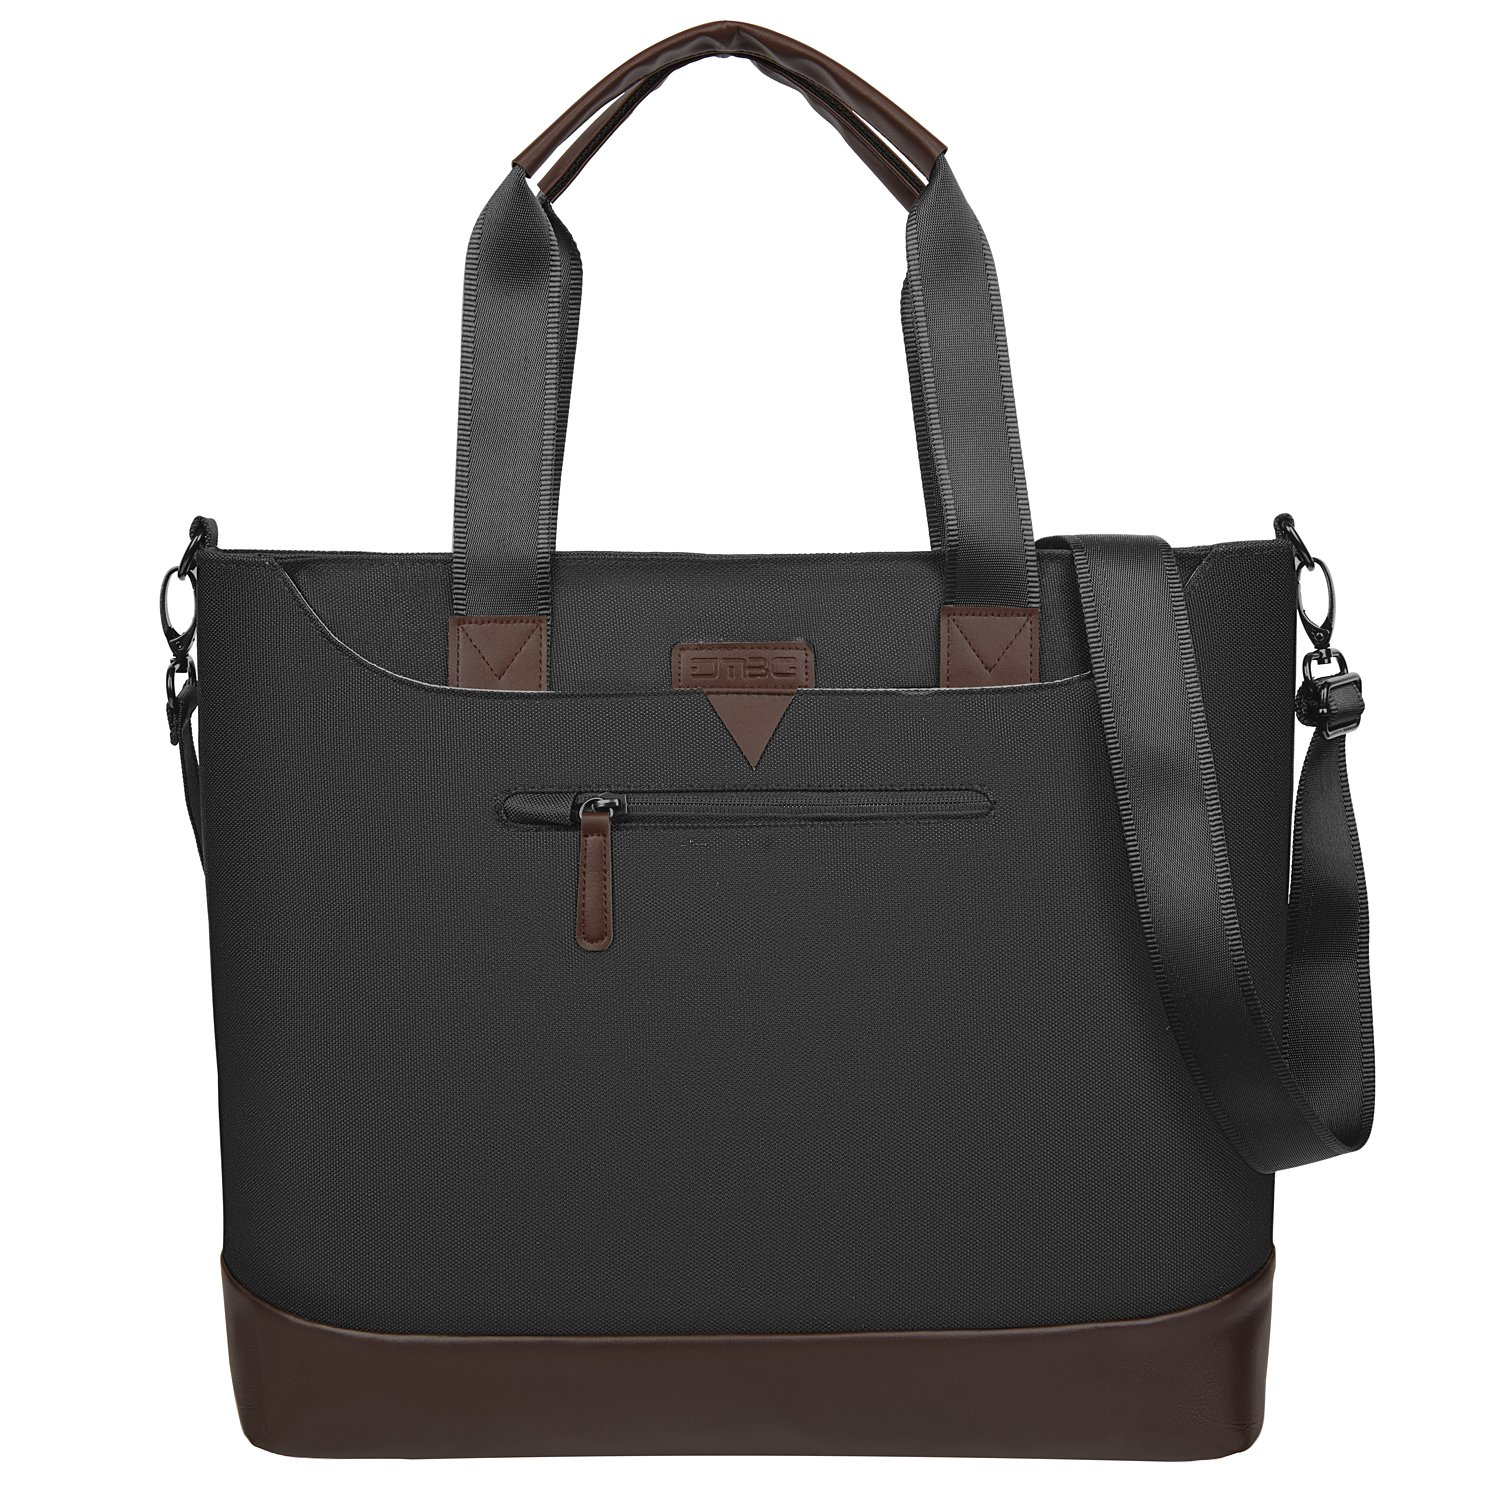 Ladies Laptop Tote Bag,DTBG Stylish Large Womens Business Laptop Shoulder Bag Work Tote Purse Office Messenger Briefcase Travel Shopping Handbag with Strap for Up to 15.6 Inch Laptop Computer,Black